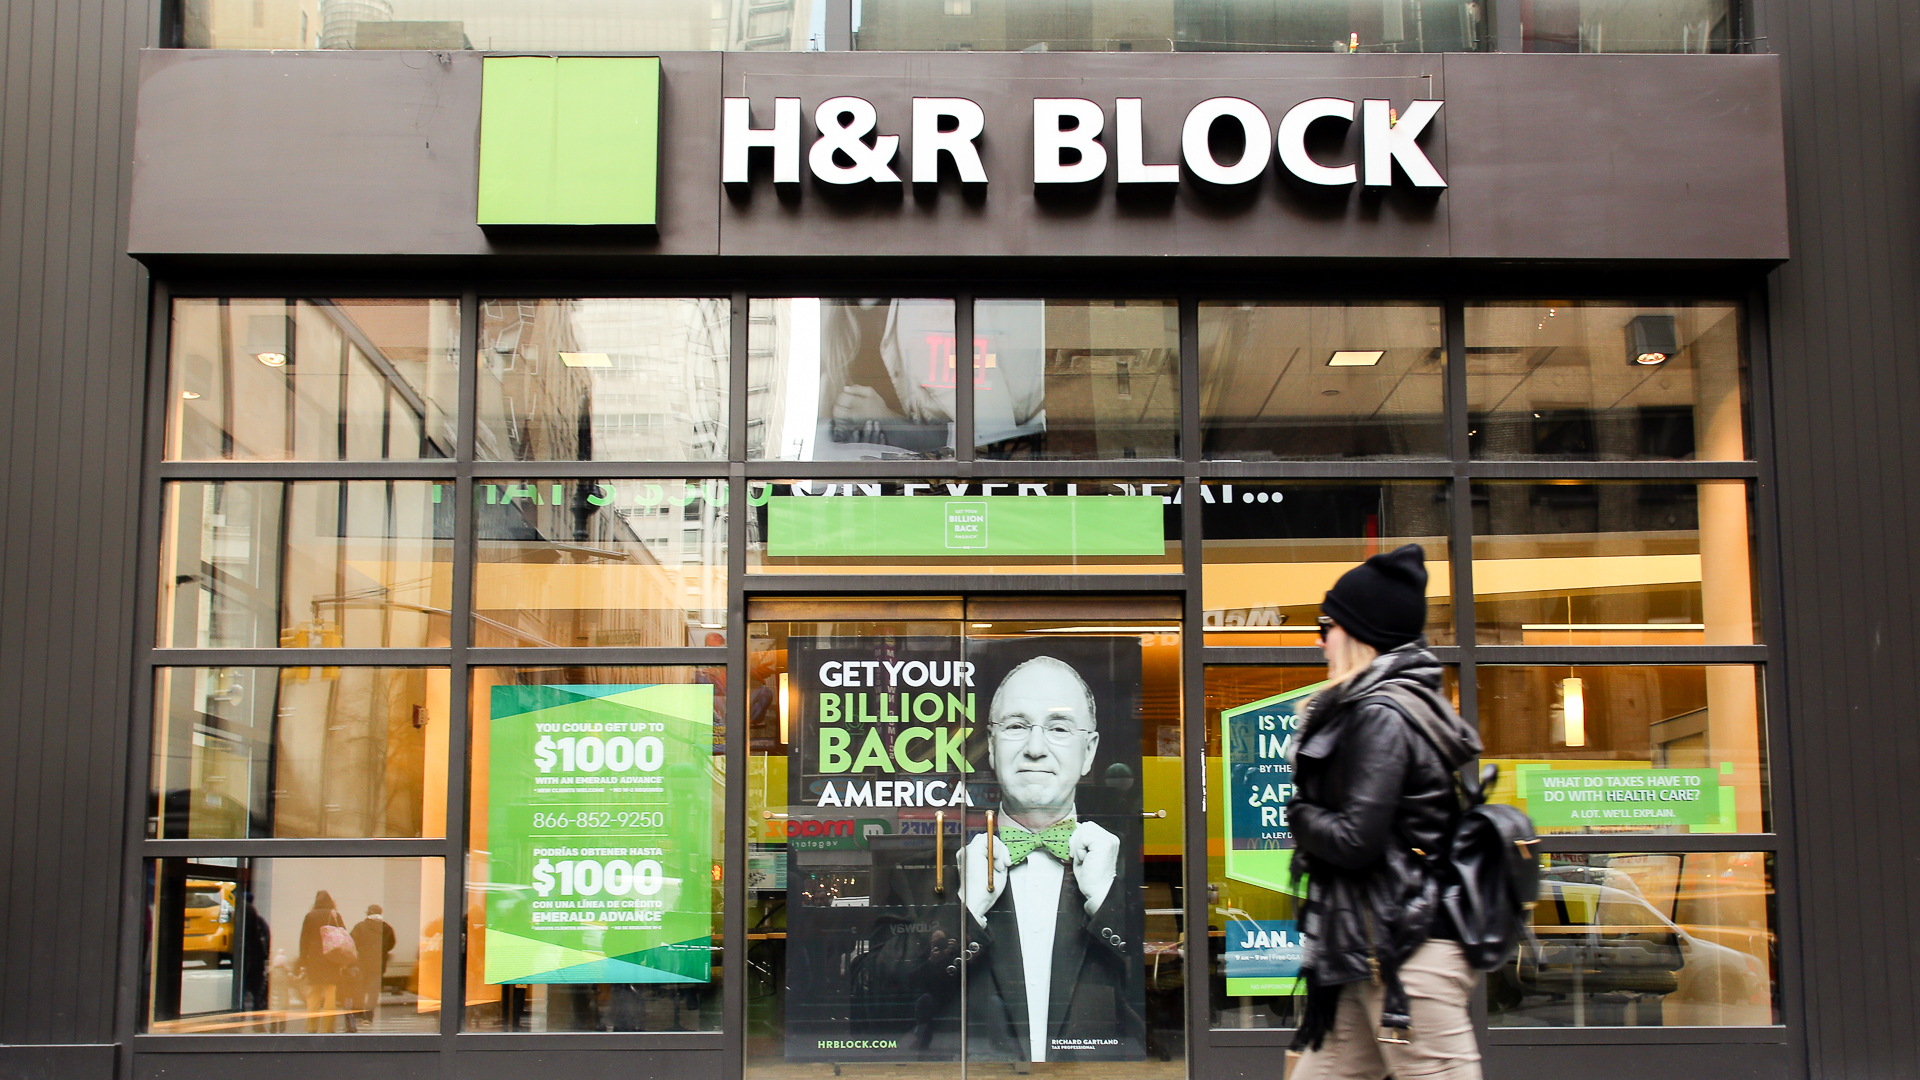 Turbotax To H&r Block: A Review Of The Best Tax Software And Services   Gobankingrates